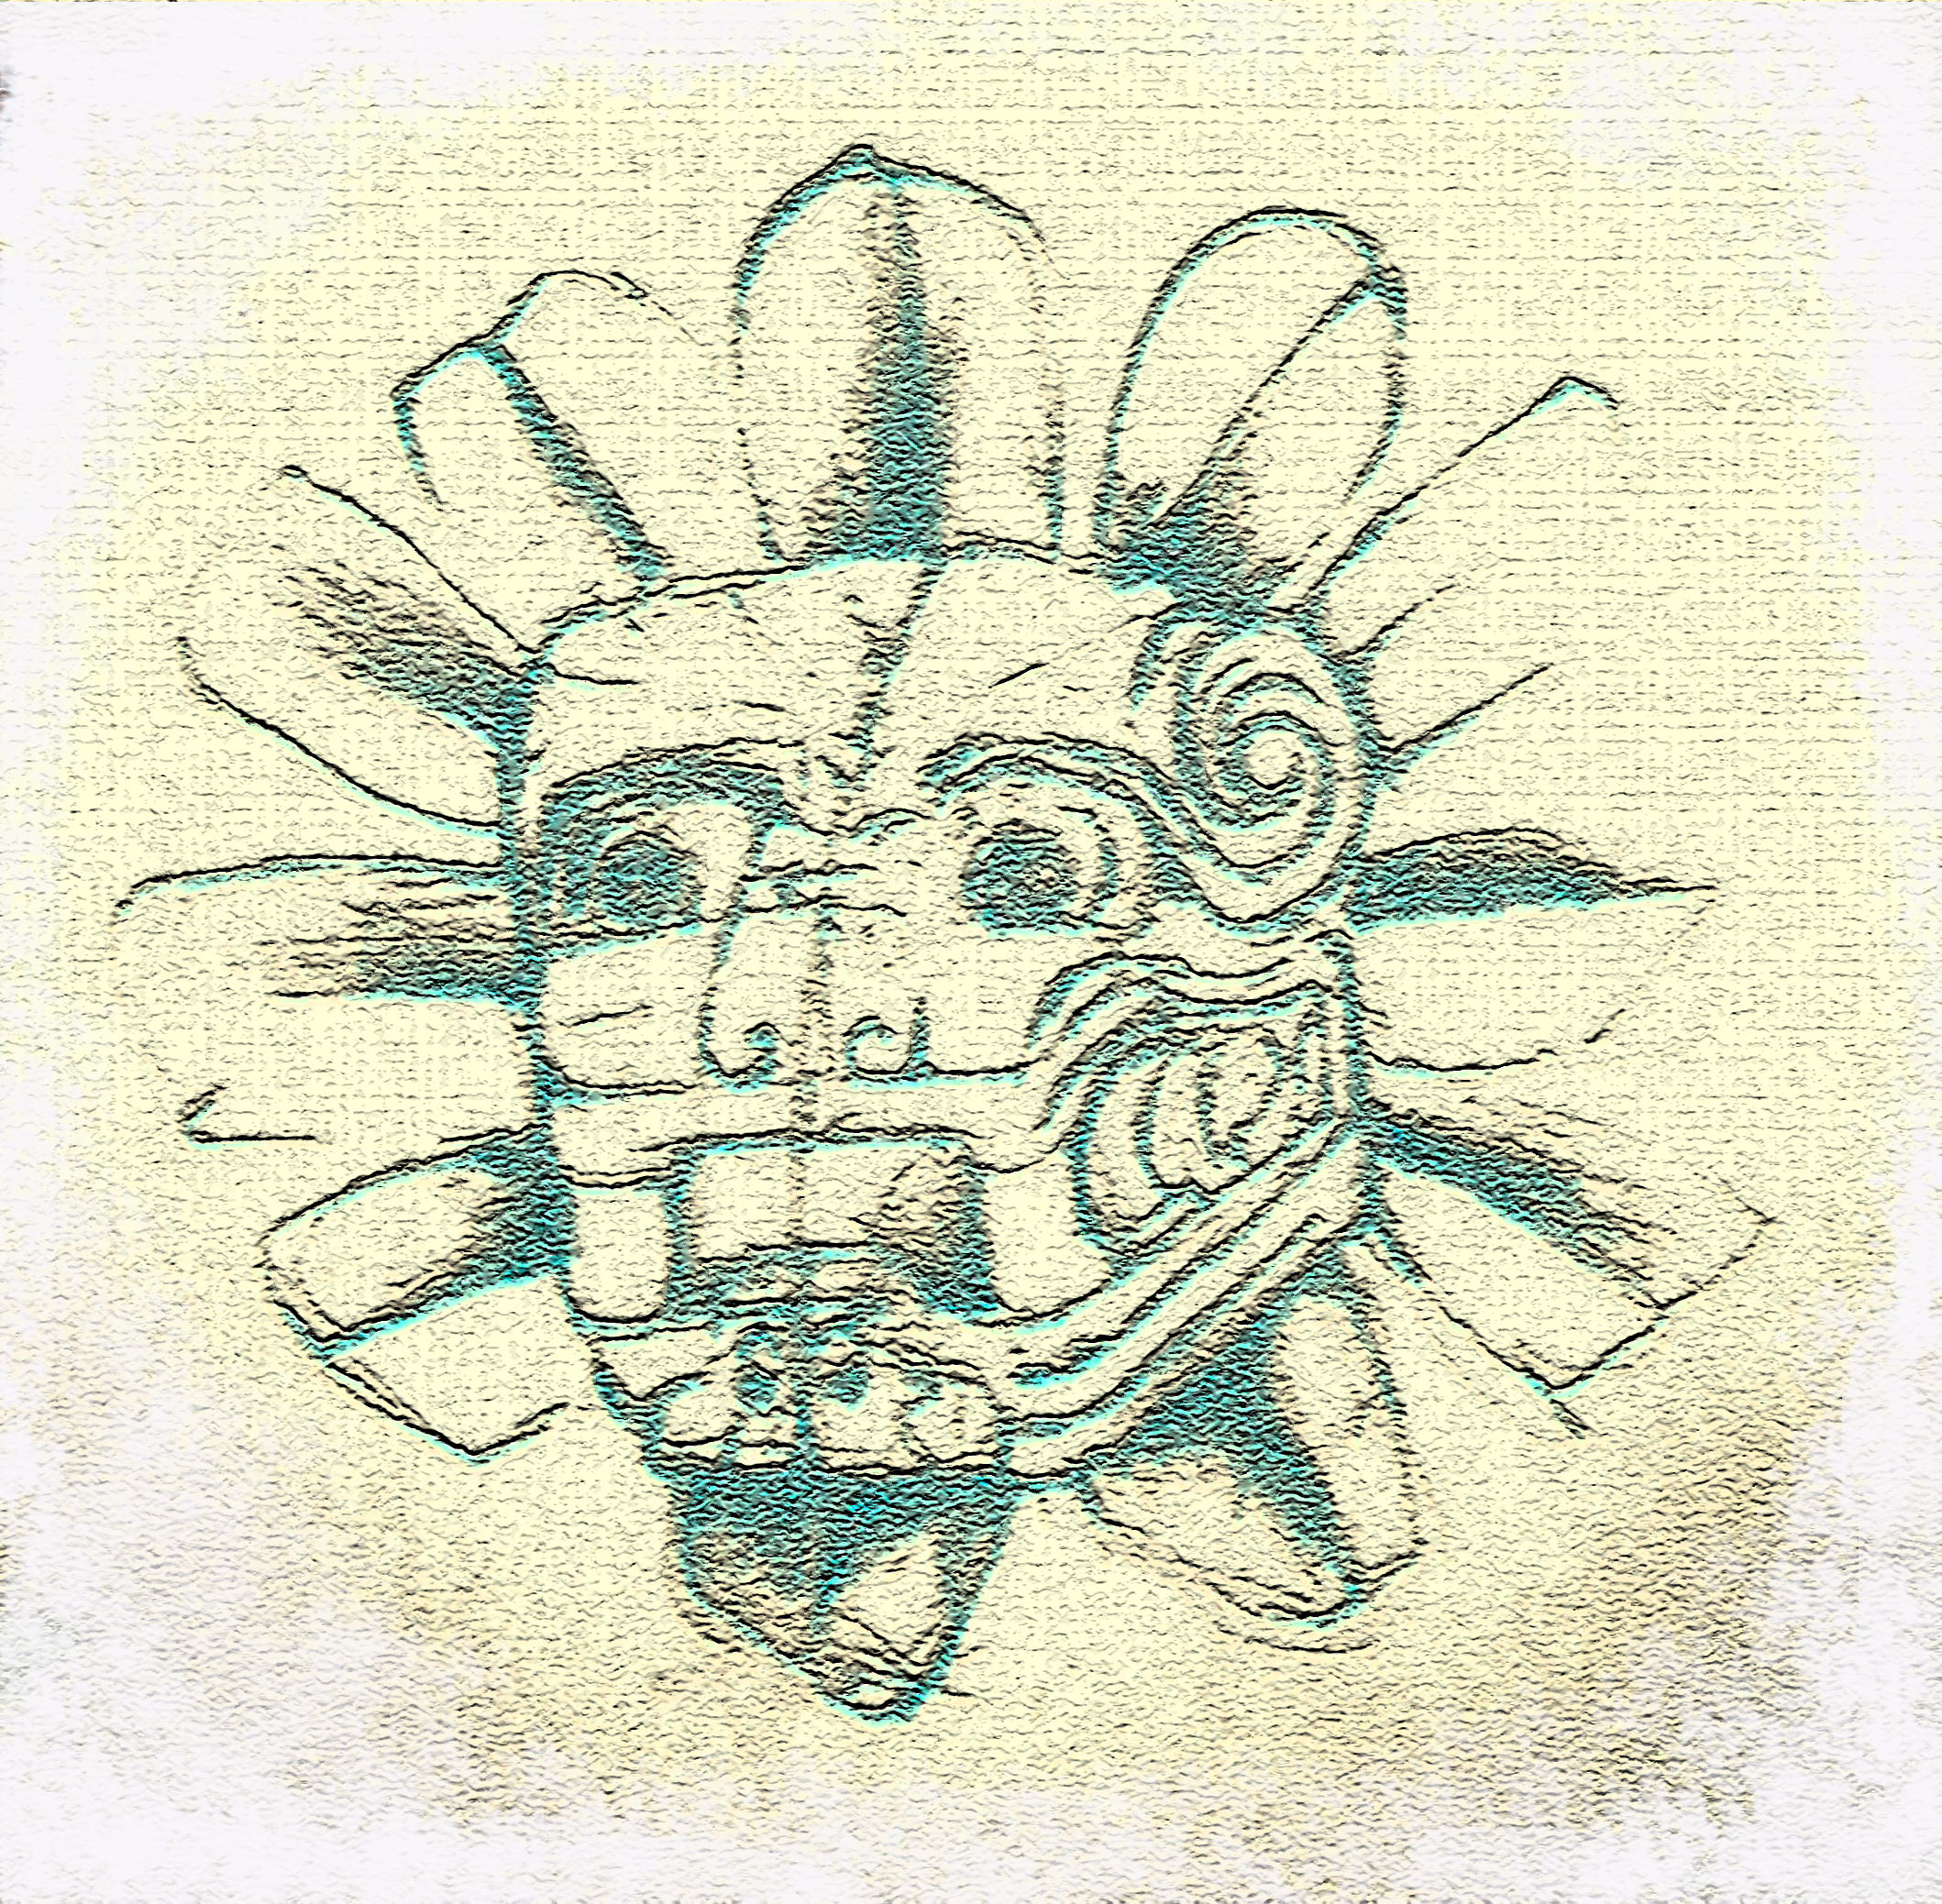 Feathered Serpent of Quetzale - Mayan Wall Relief sketch